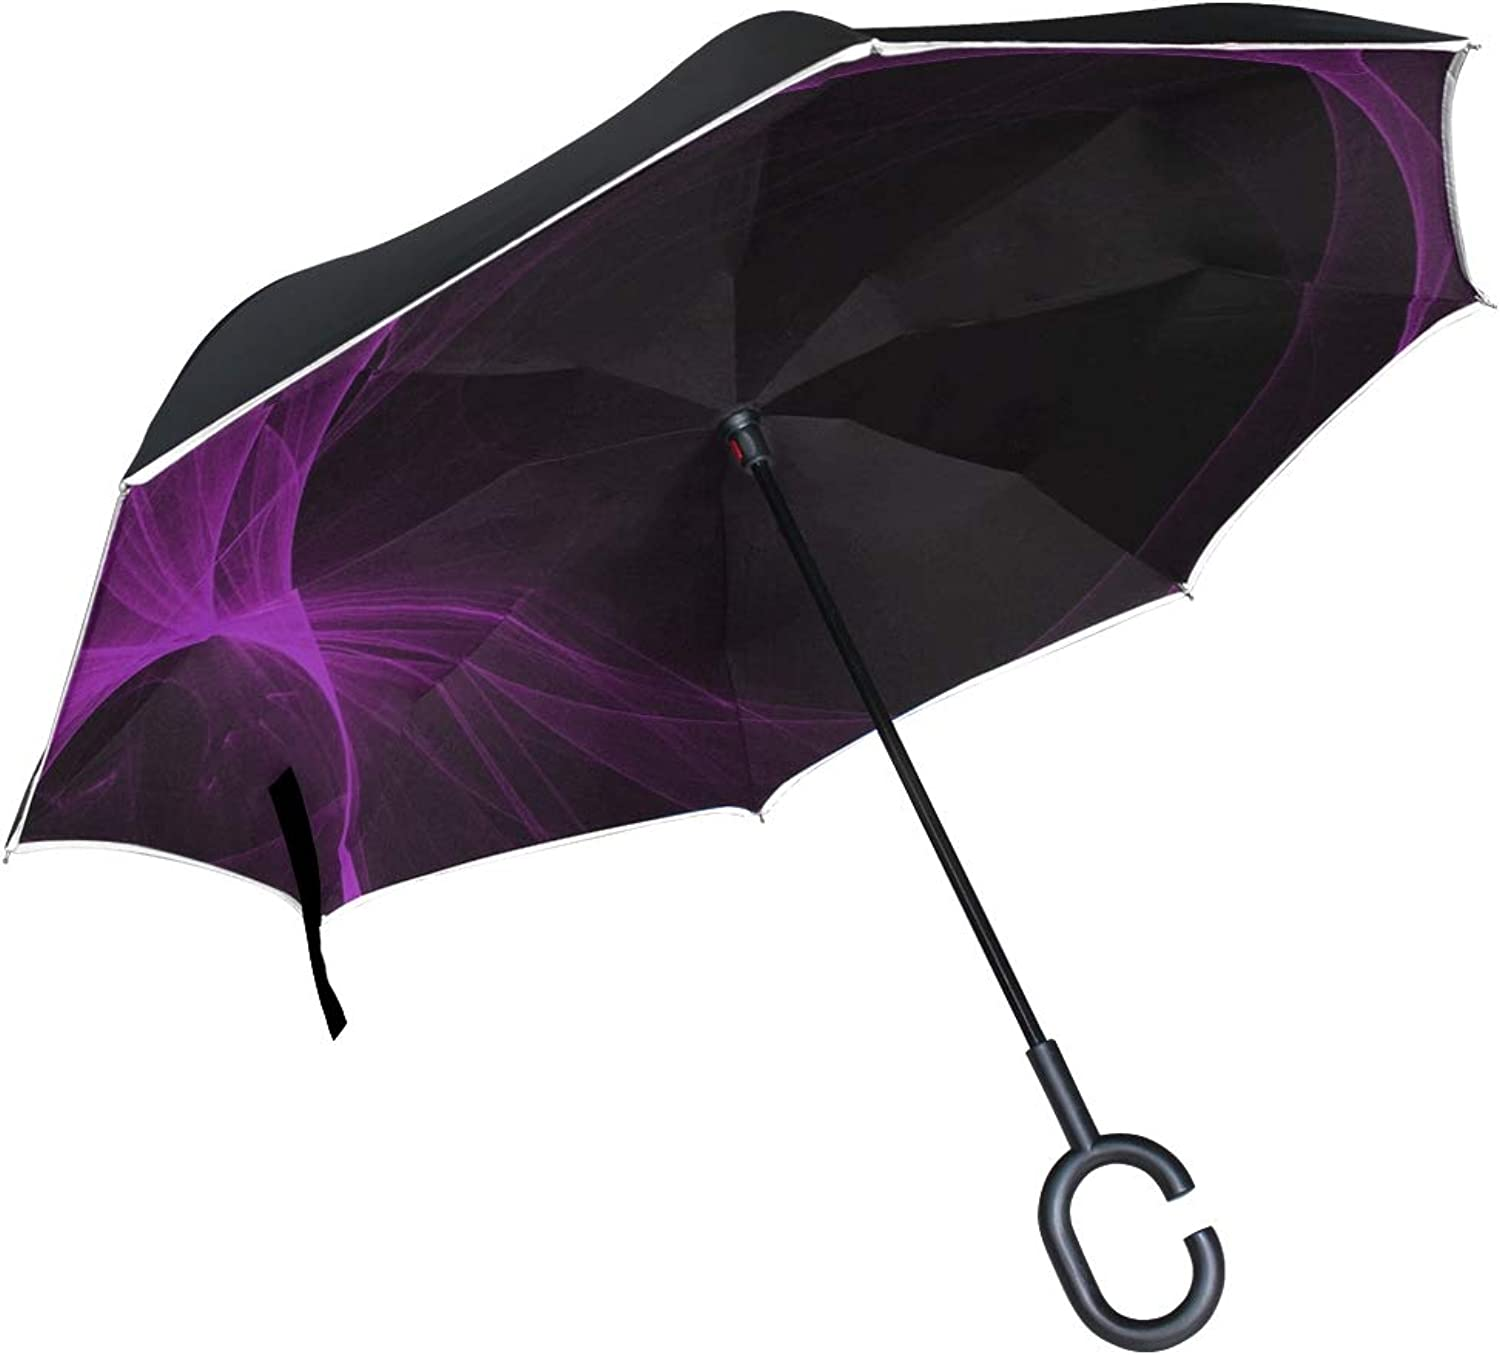 Double Layer Ingreened Abstract Decorative Light Glow Page Umbrellas Reverse Folding Umbrella Windproof Uv Predection Big Straight Umbrella for Car Rain Outdoor with CShaped Handle